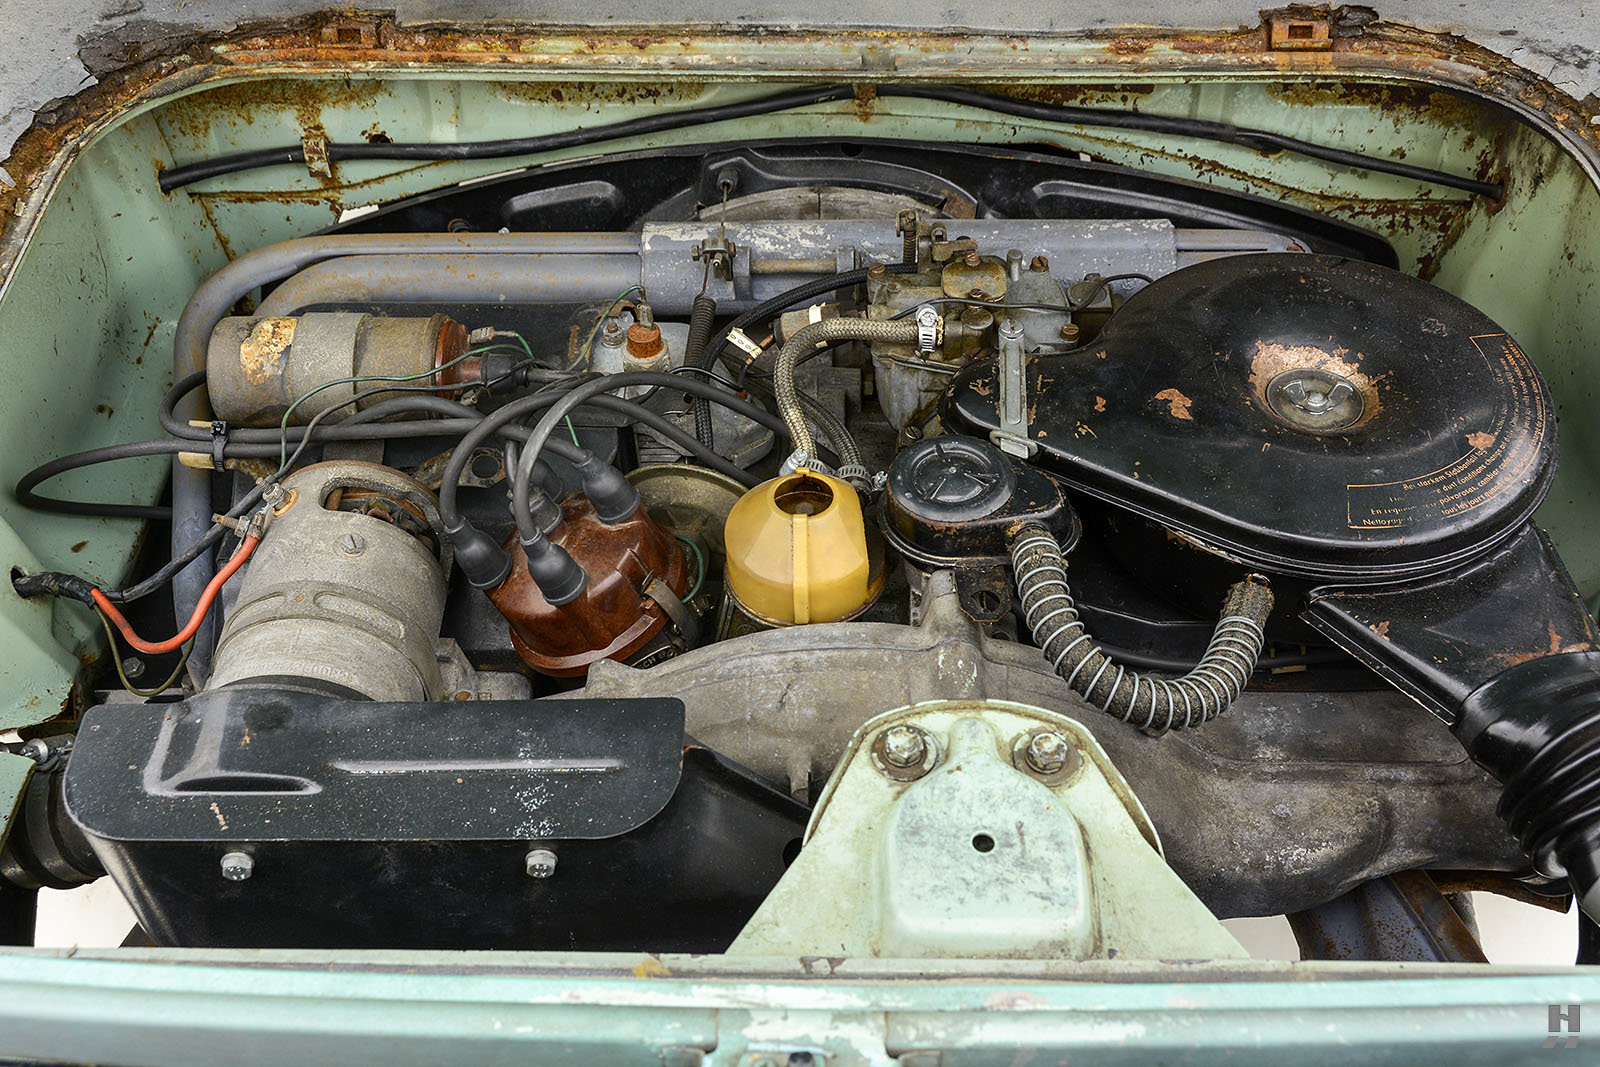 1963 Volkswagen Type 34 Karmann Ghia Coupe For Sale (picture 3 of 6)